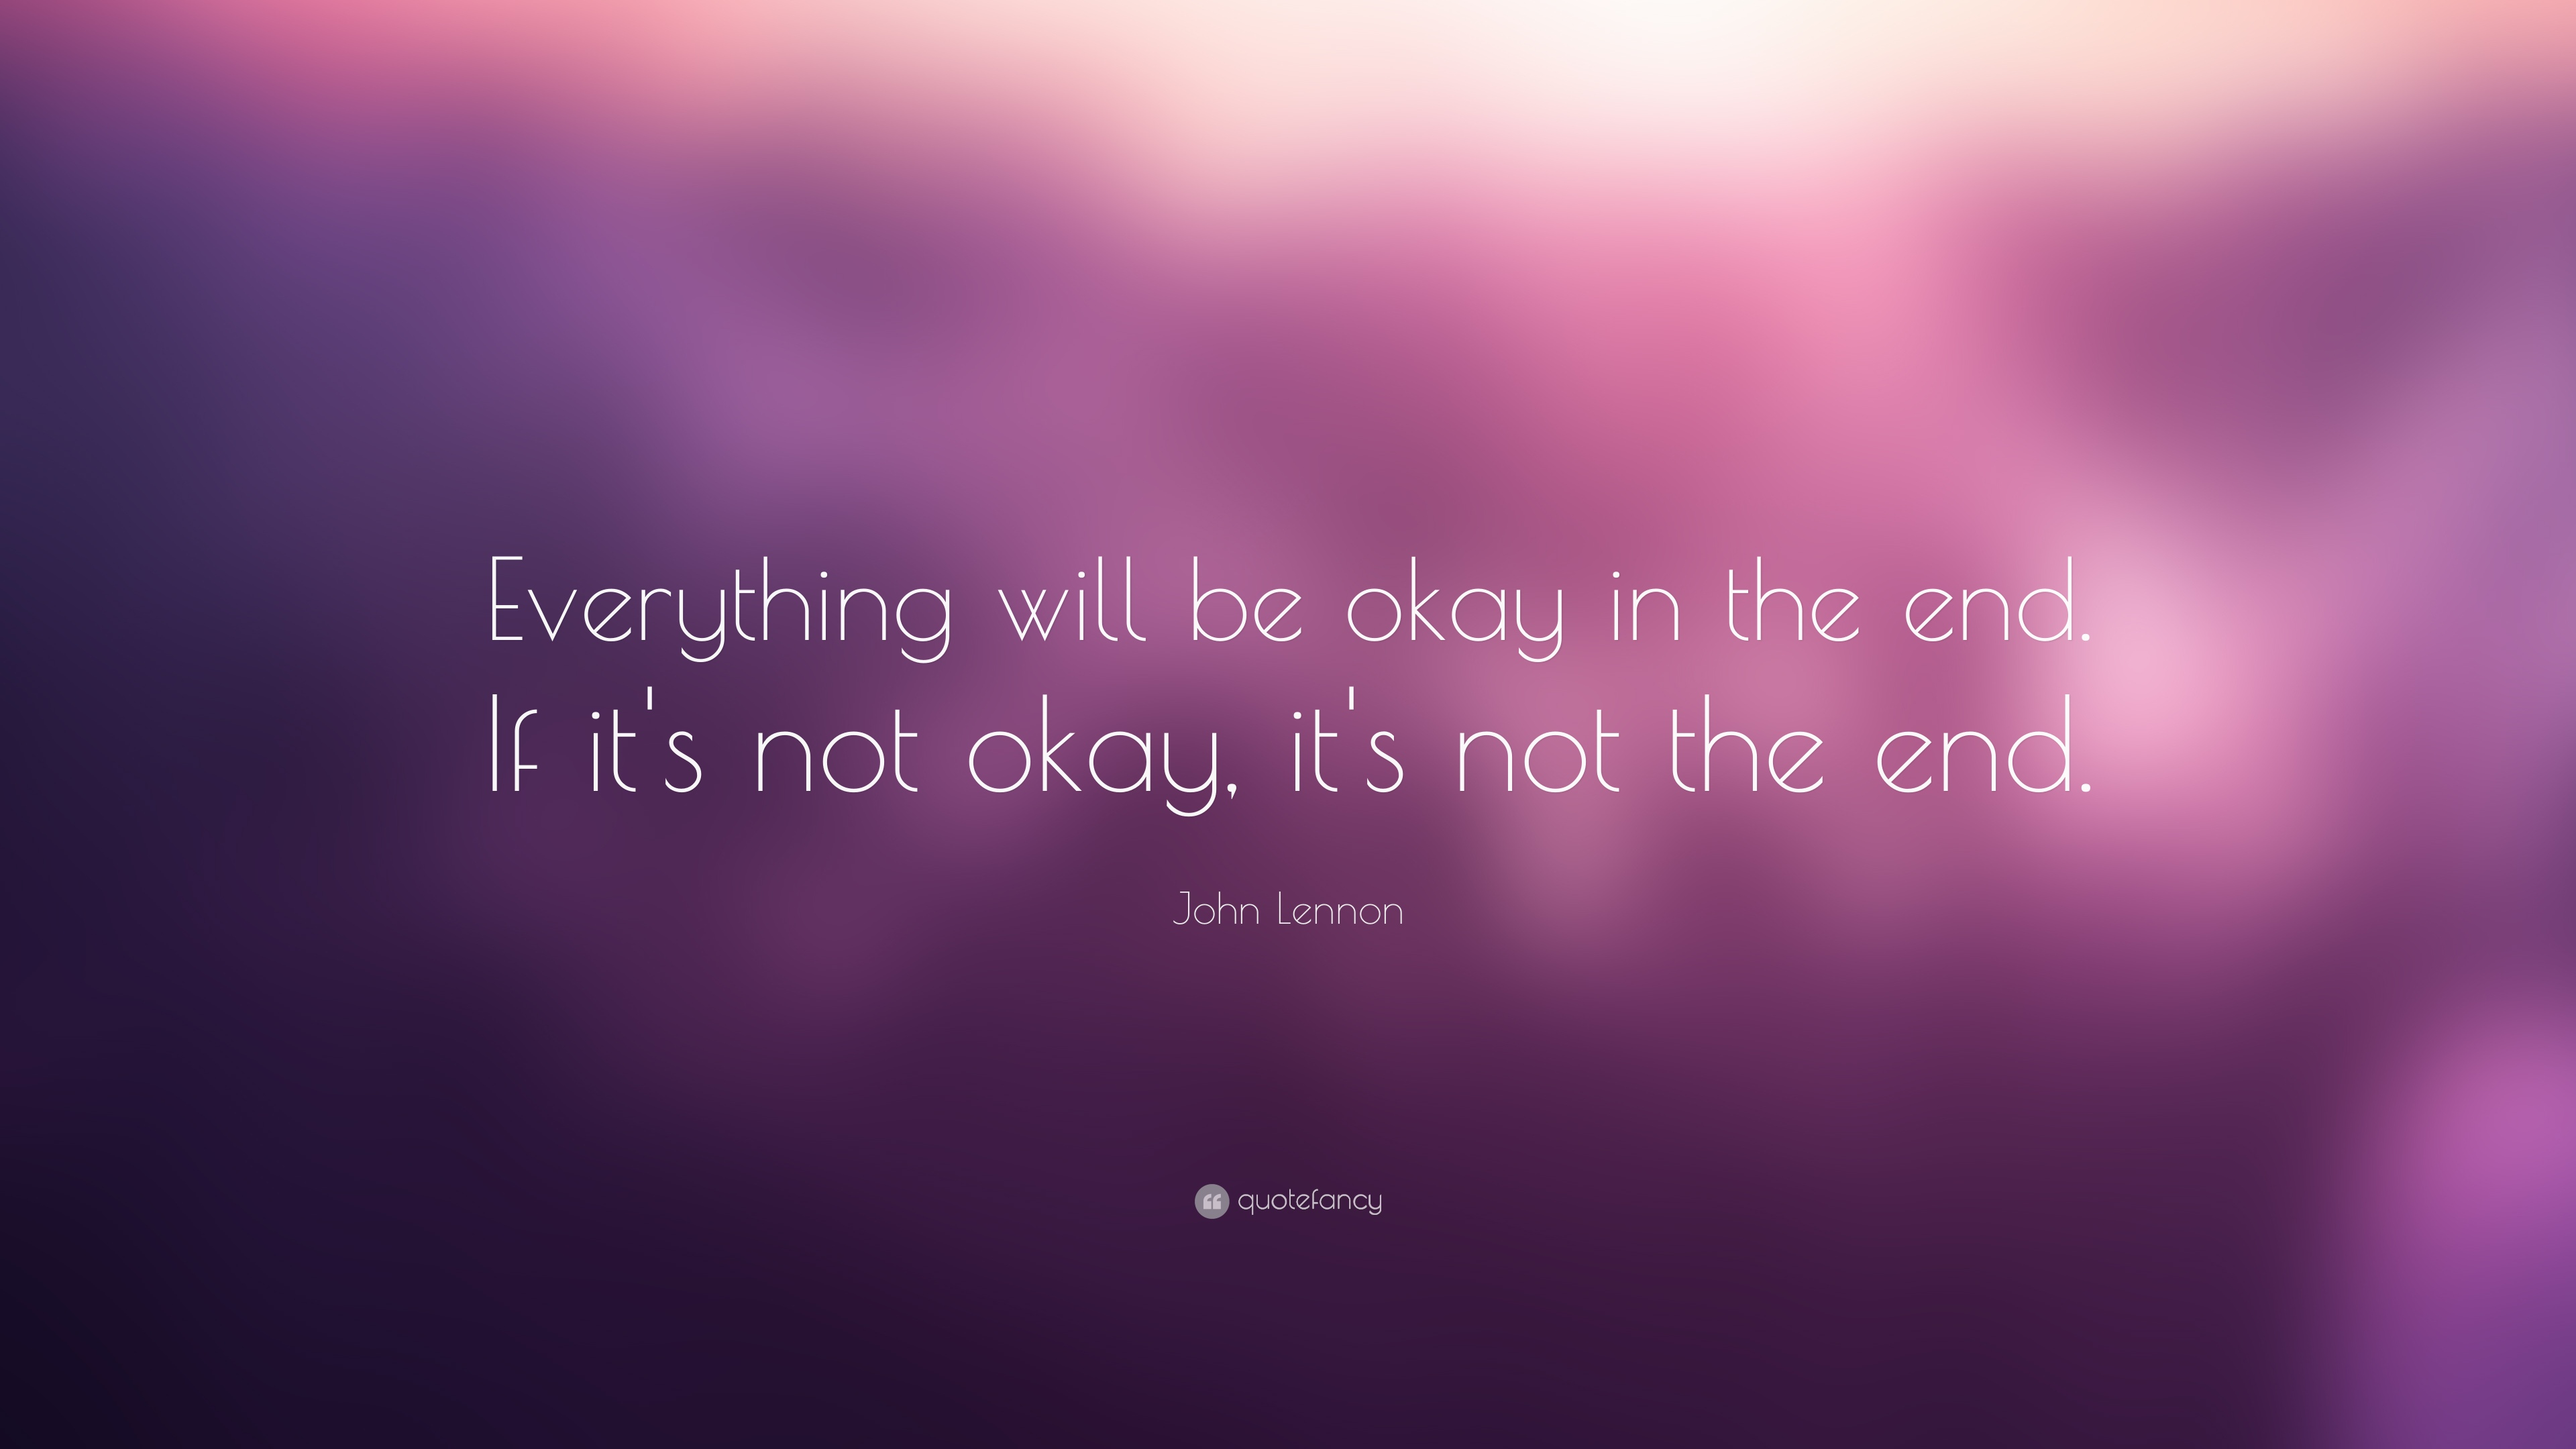 Bildergebnis für in the end everything will be okay if it's not okay it's not the end